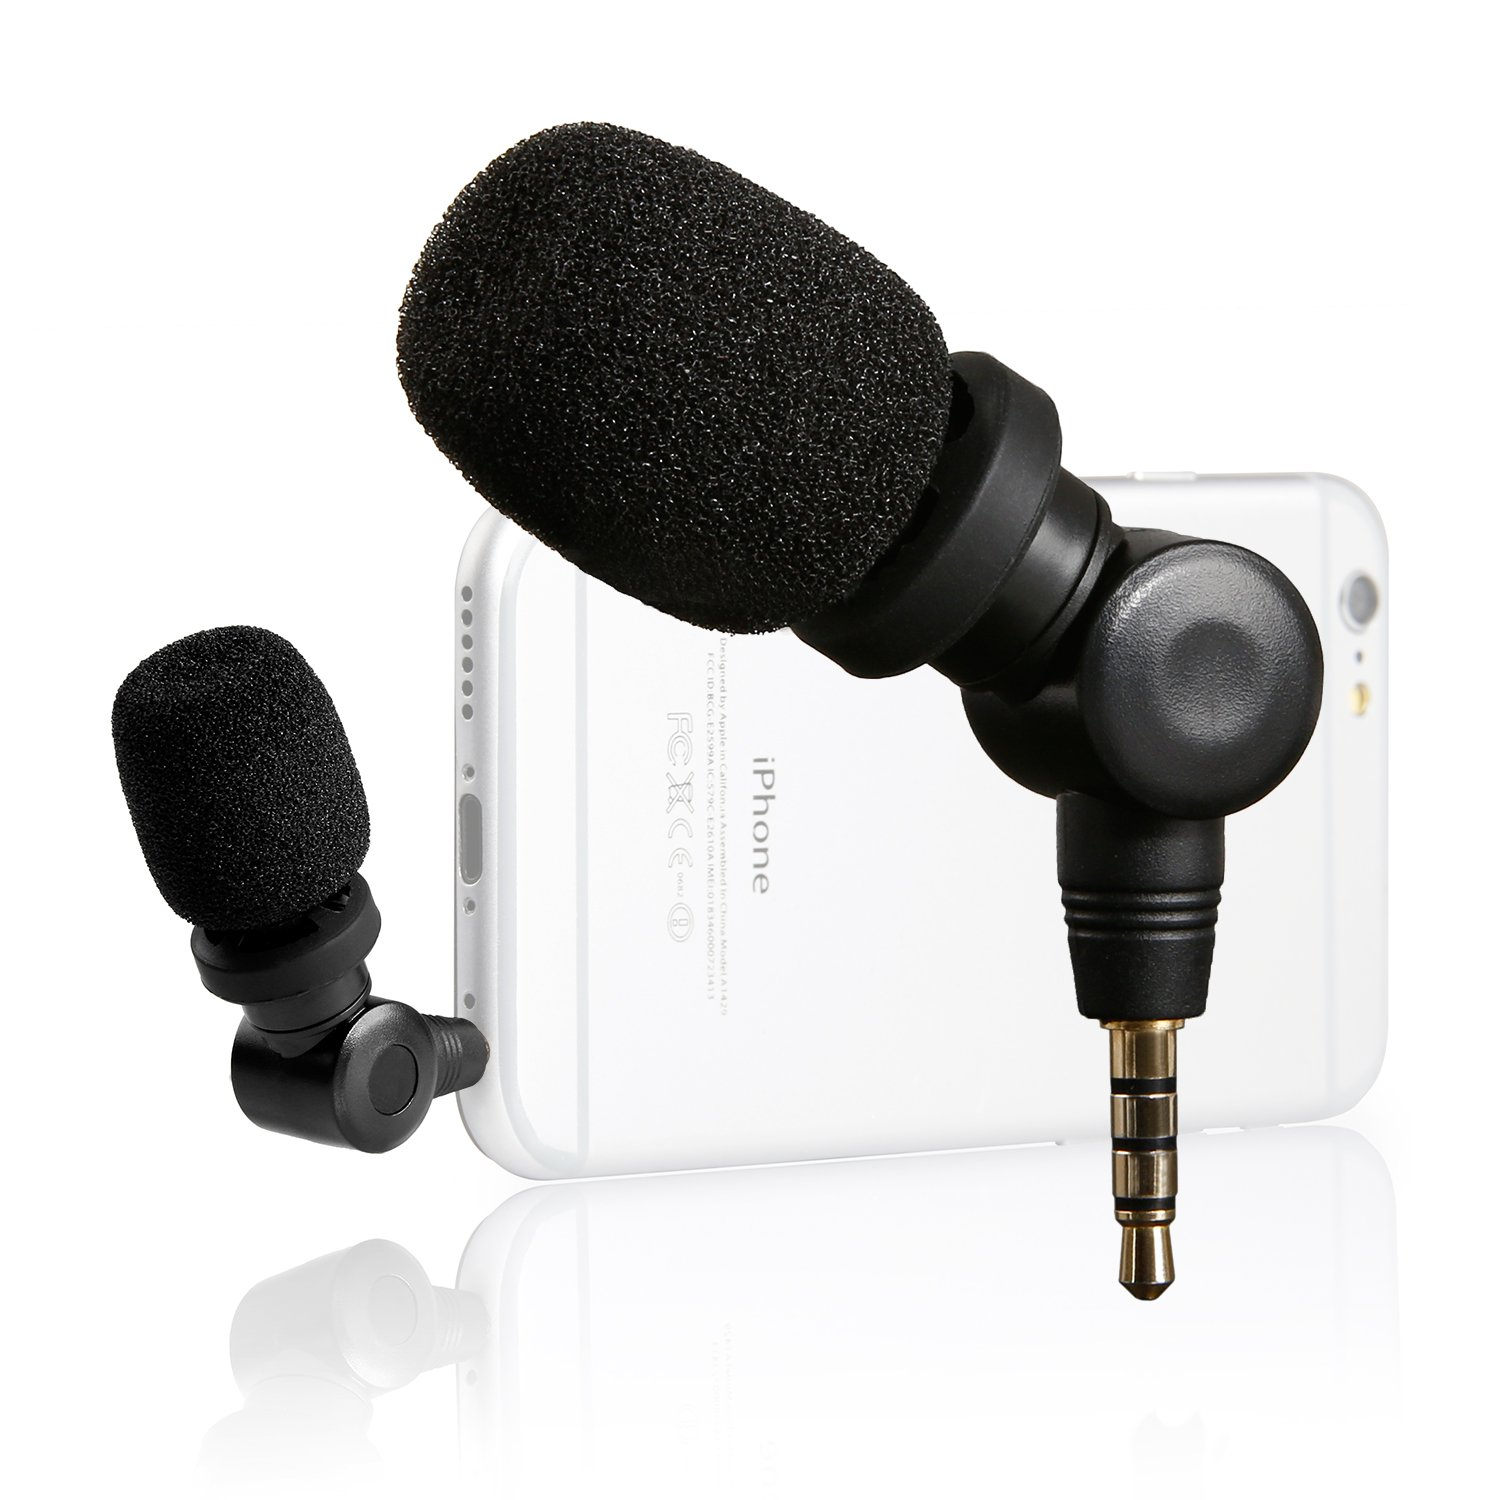 Saramonic Mini Flexible Microphone with High Sensitivity for Apple IOS iPhone 8 8 x 8 plus 7 iPad Smartphones Podcast Vlog Youtube Selfie Video Livestream by Saramonic